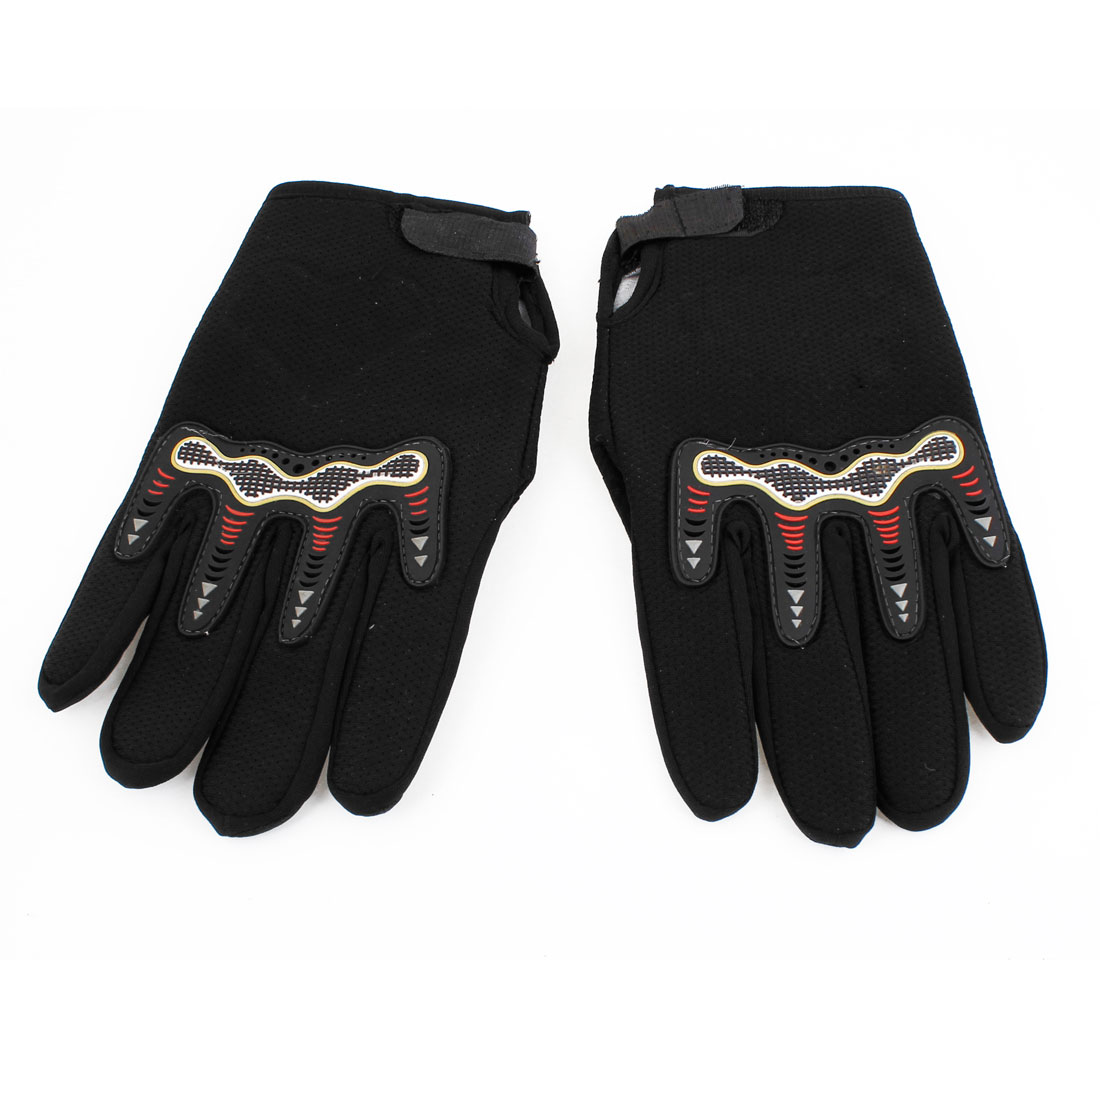 Pair Man Protective Hand Sports Mountain Bike Gloves Black